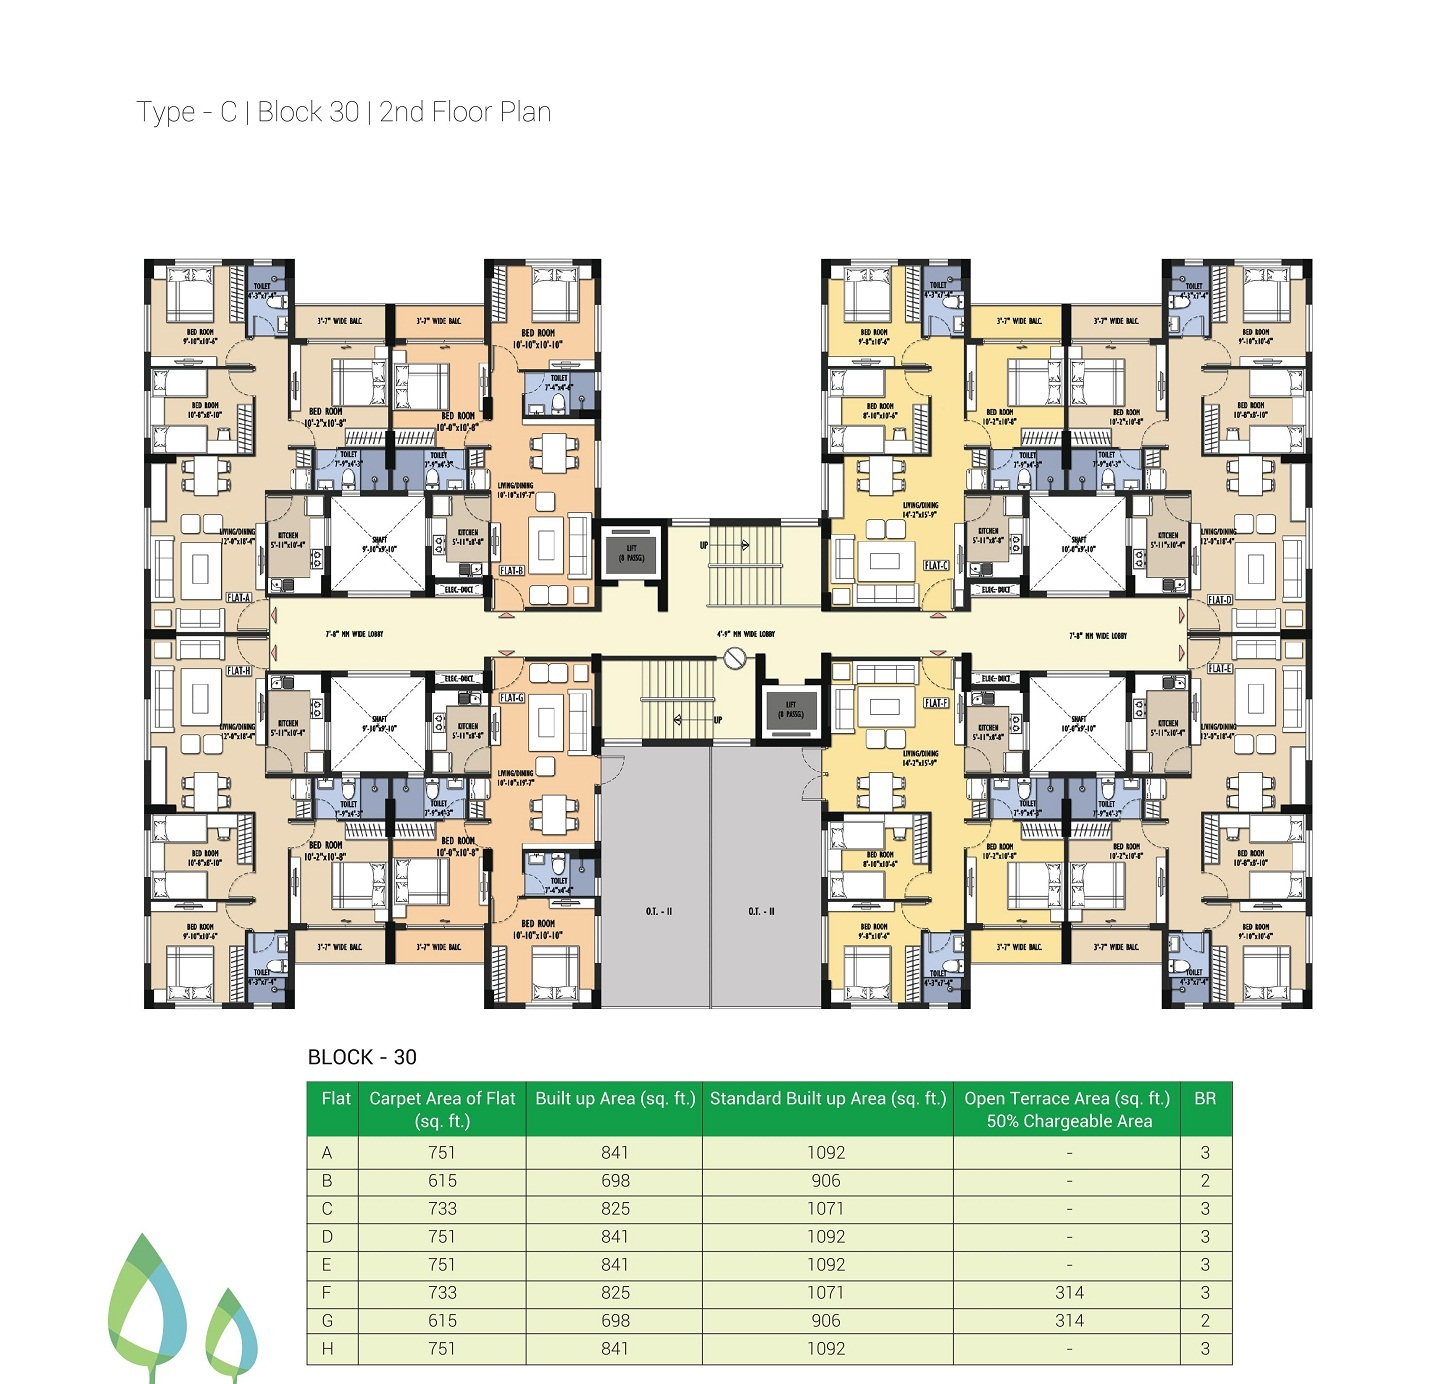 Block 30 - 2nd Floor Plan